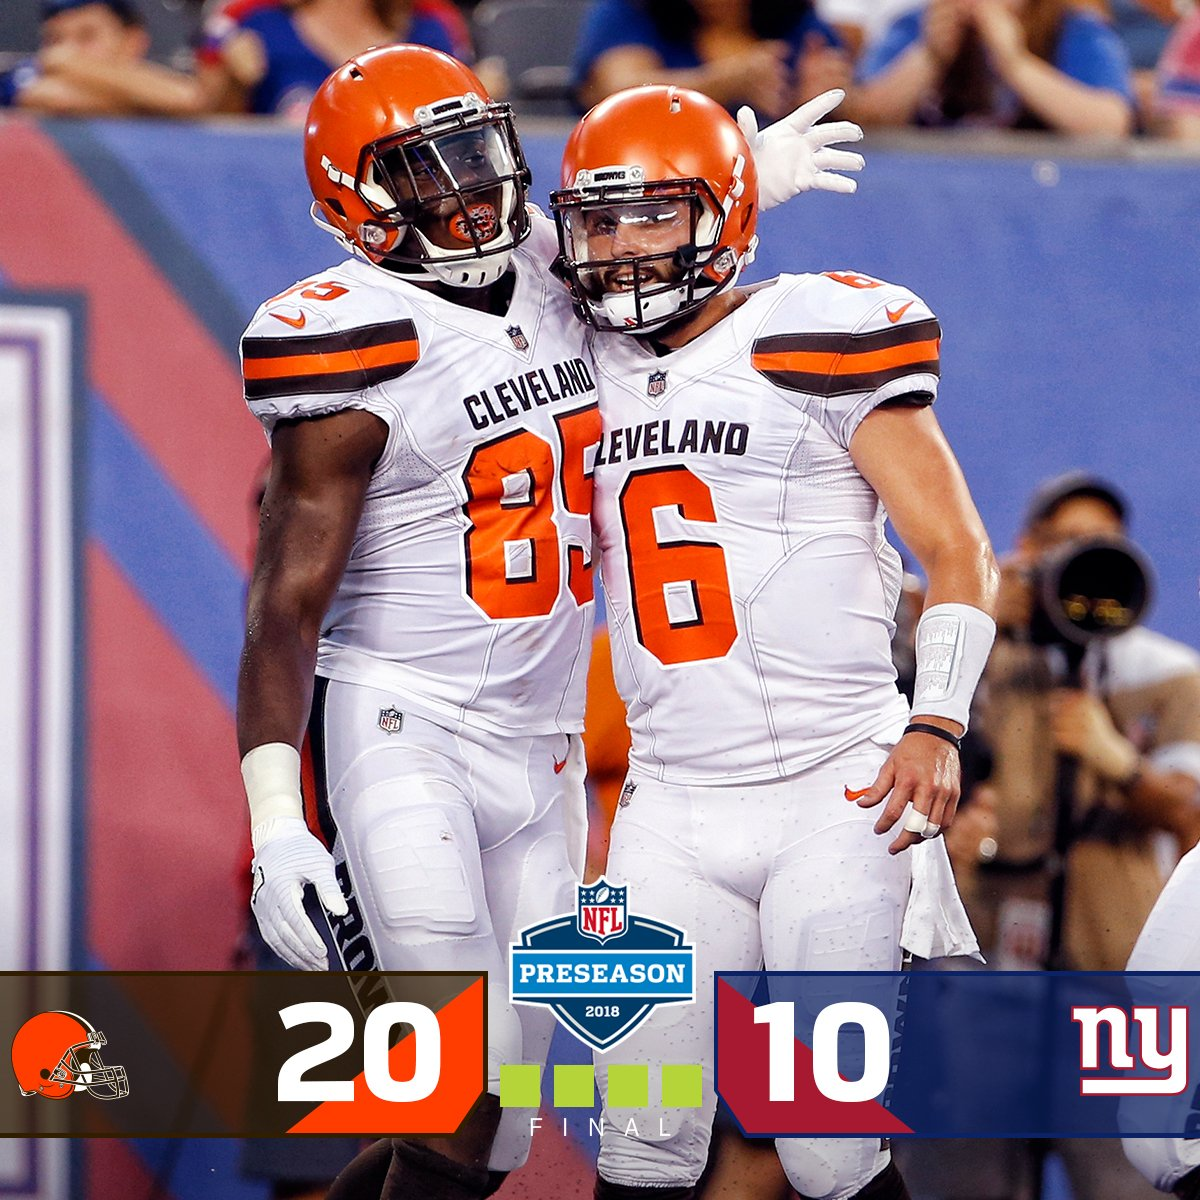 FINAL: @Browns get the 20-10 WIN! #CLEvsNYG <br>http://pic.twitter.com/B5QQ3H960f